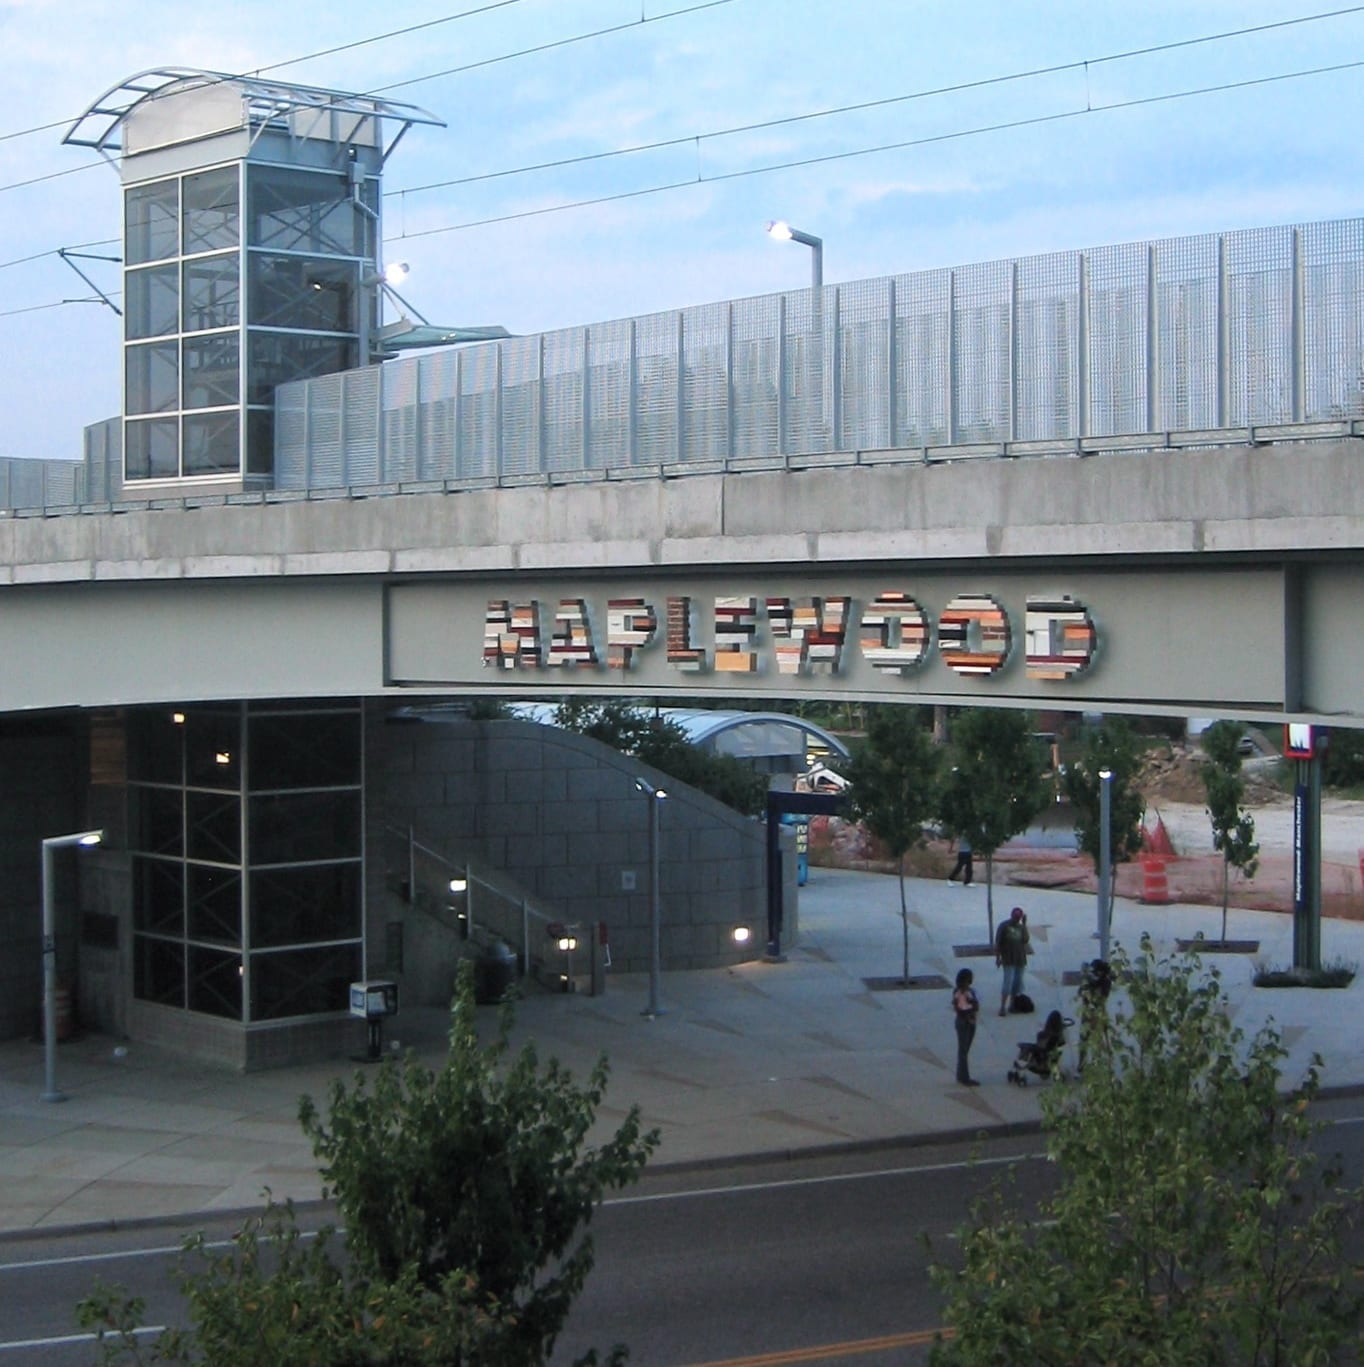 Maplewood-Manchester MetroLink station; image by Millbrooky, CC BY-SA 3.0, from Wikimedia Commons, no changes.